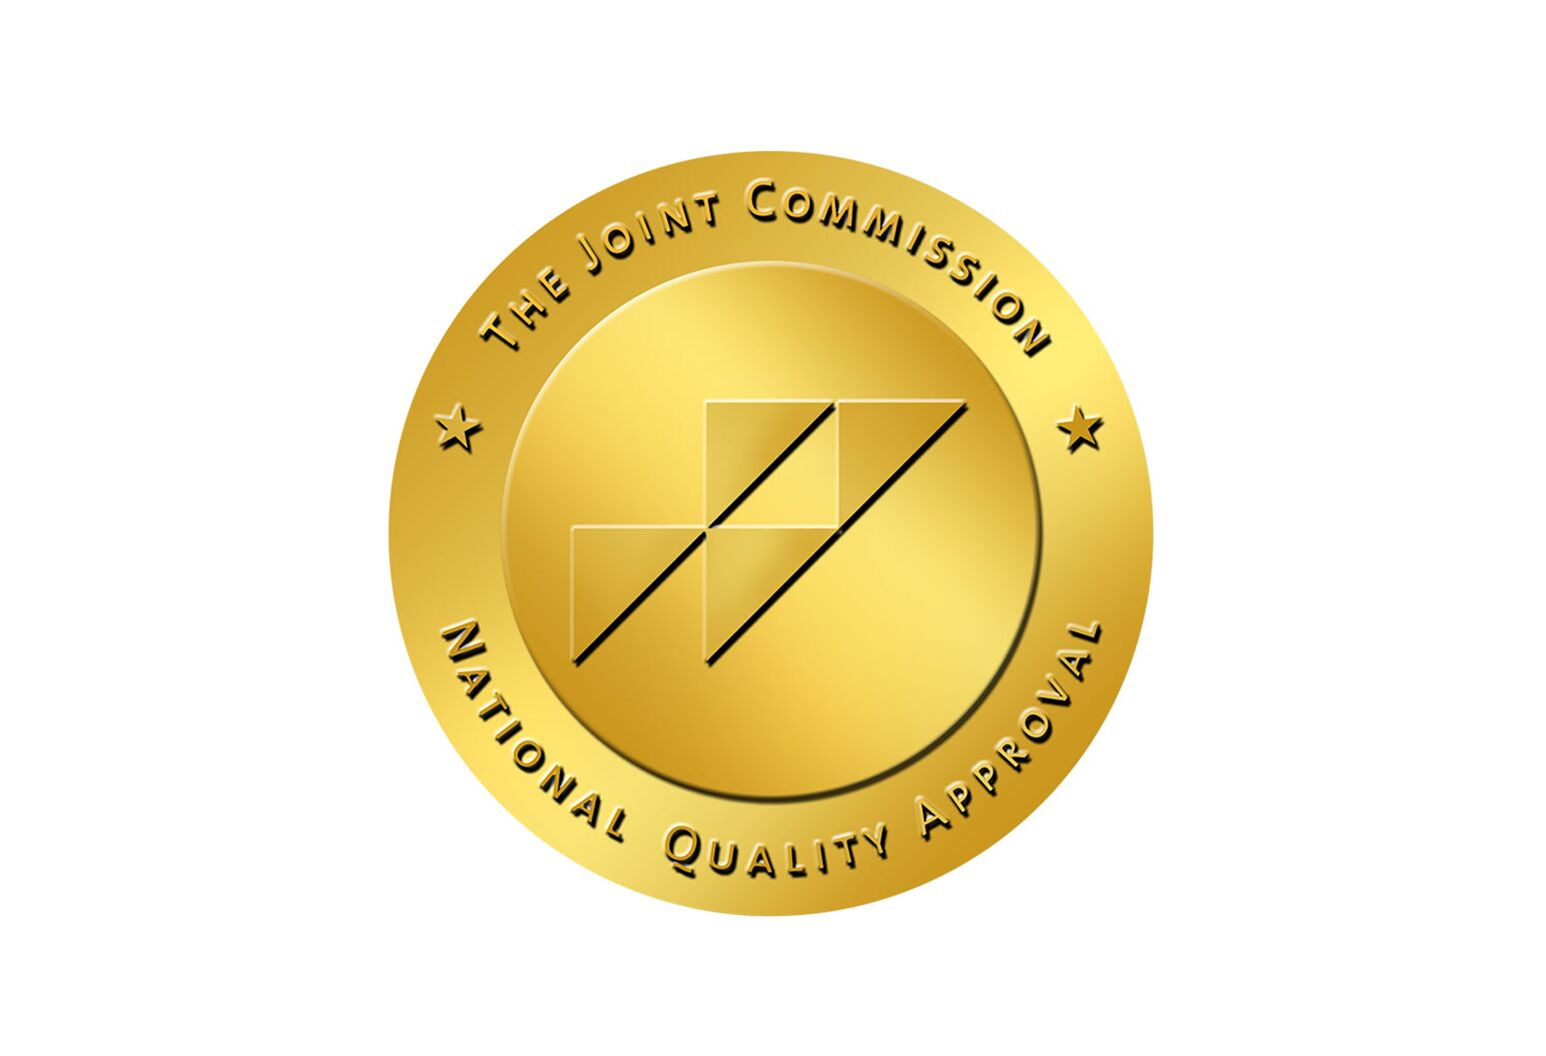 Joint Commission Gold Seal logo